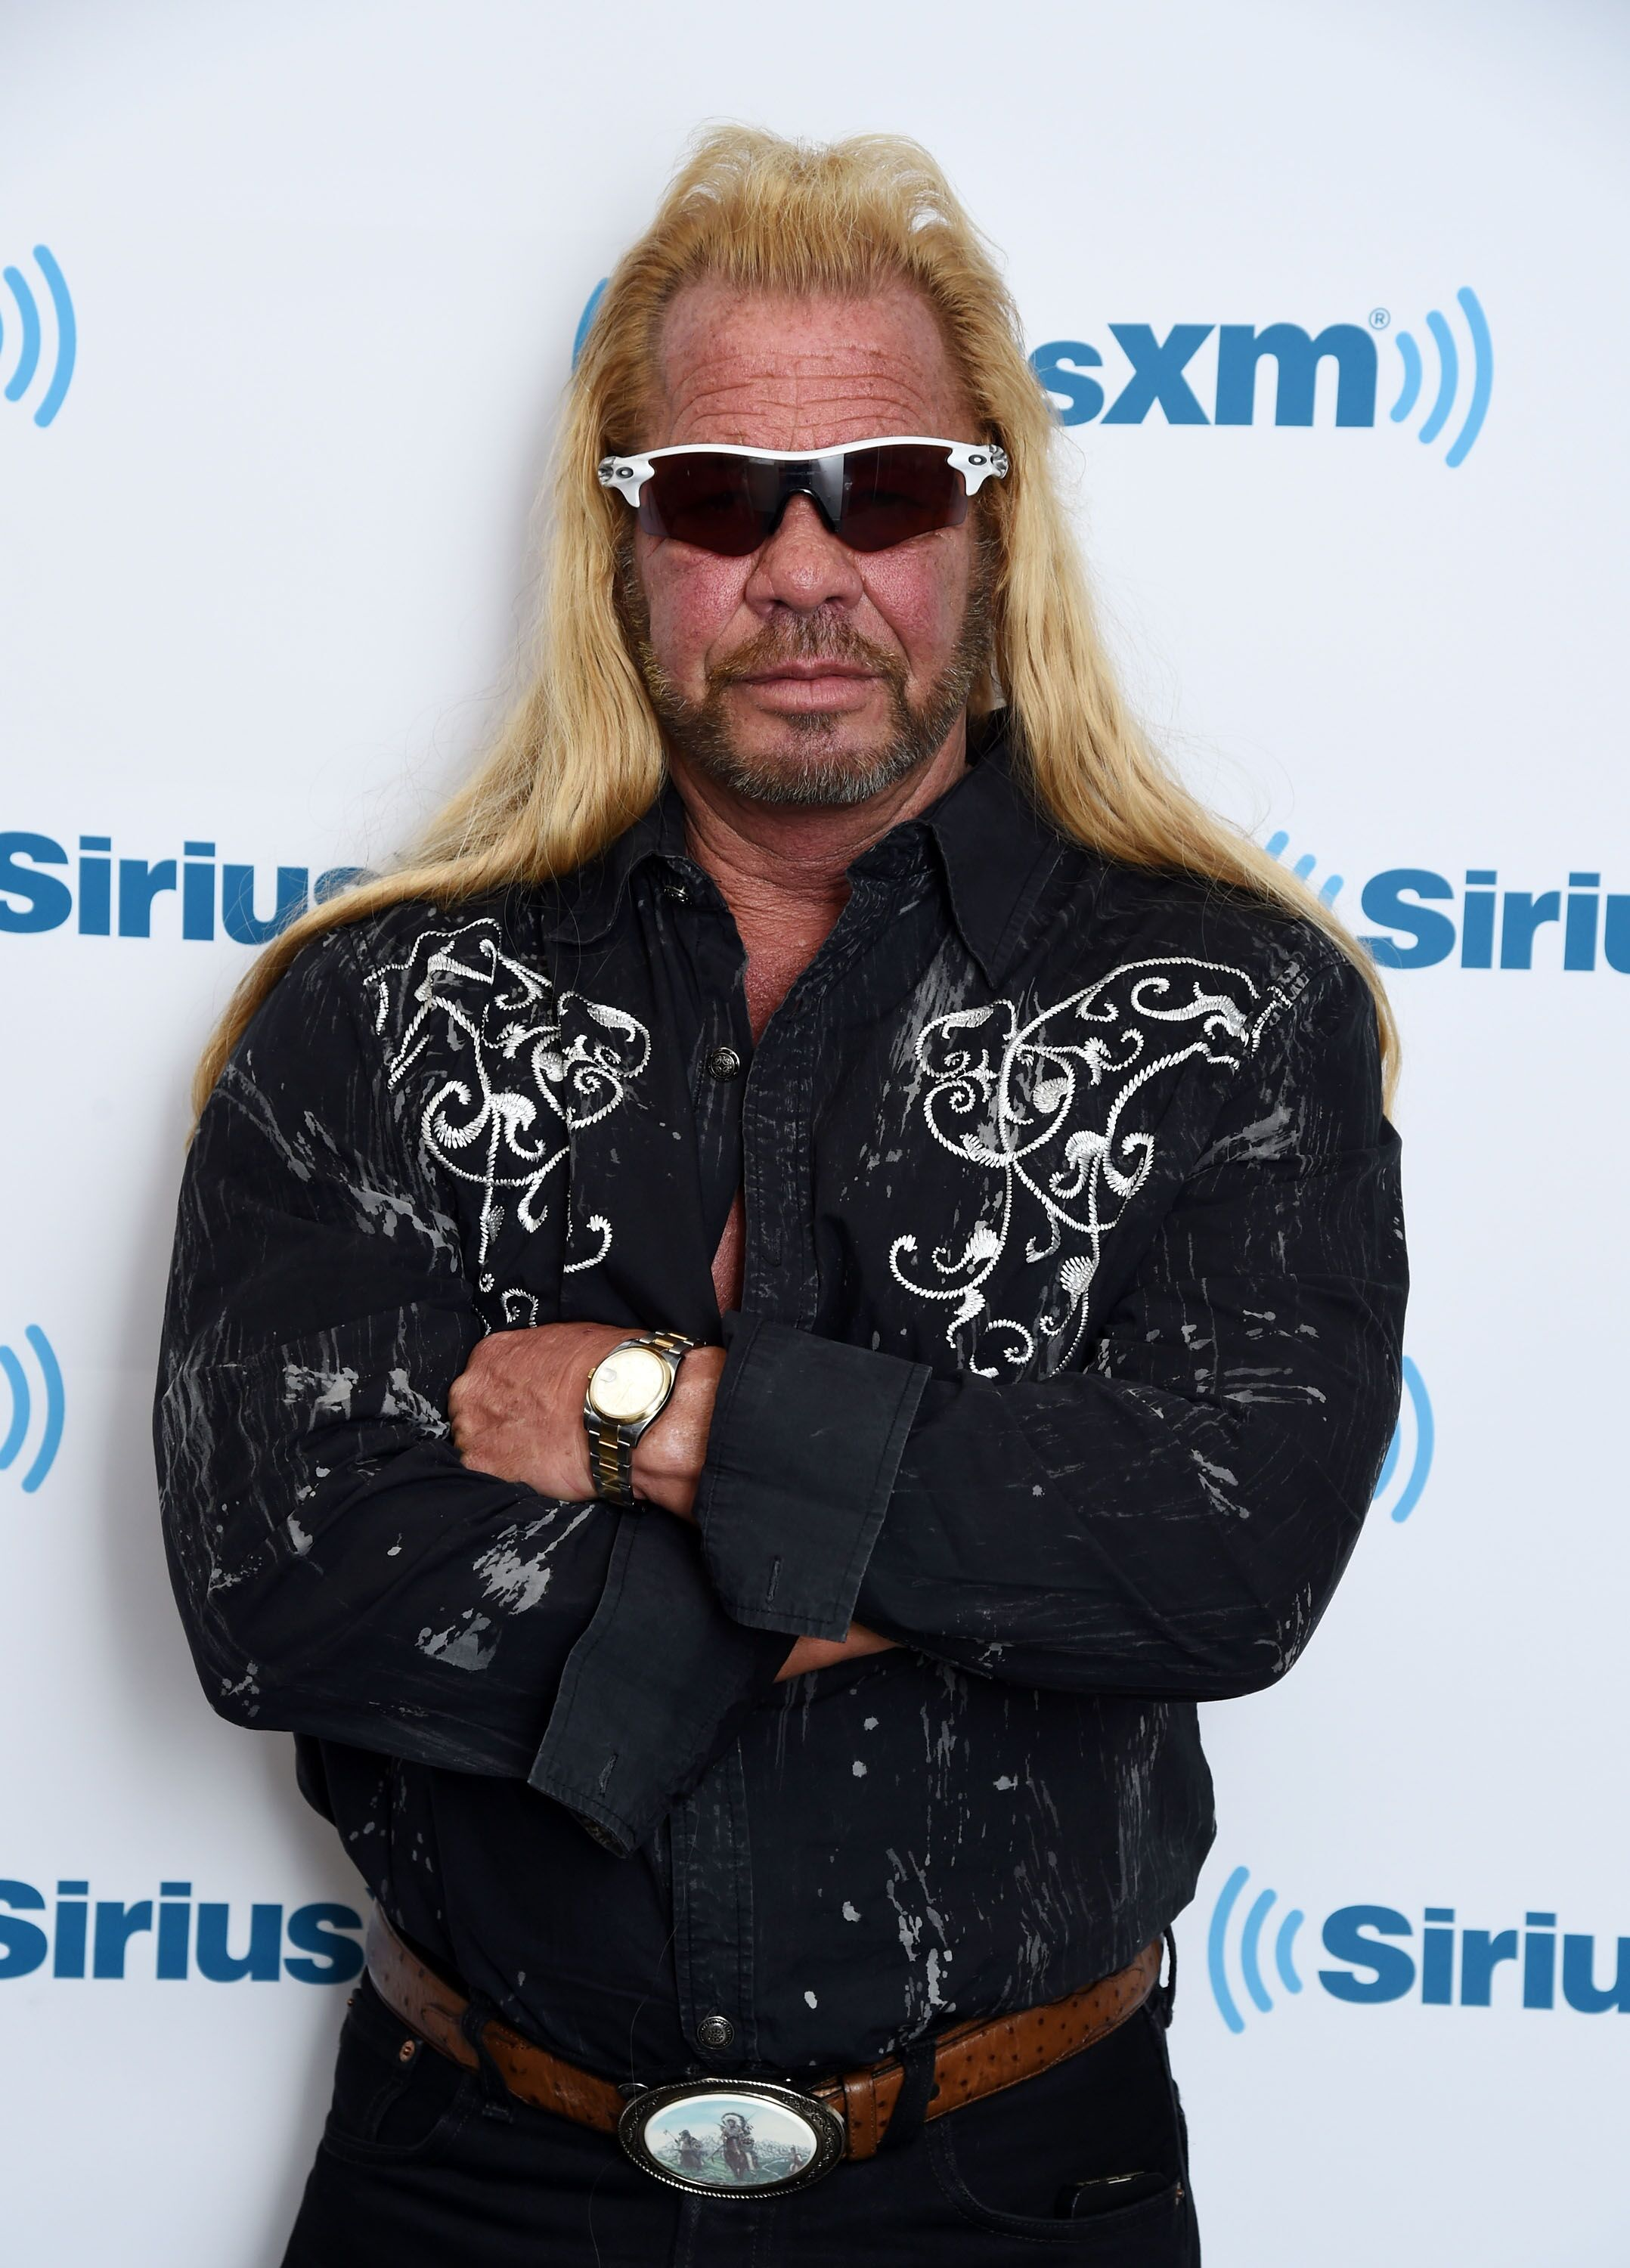 Duane Chapman. Image Credit: Getty Images